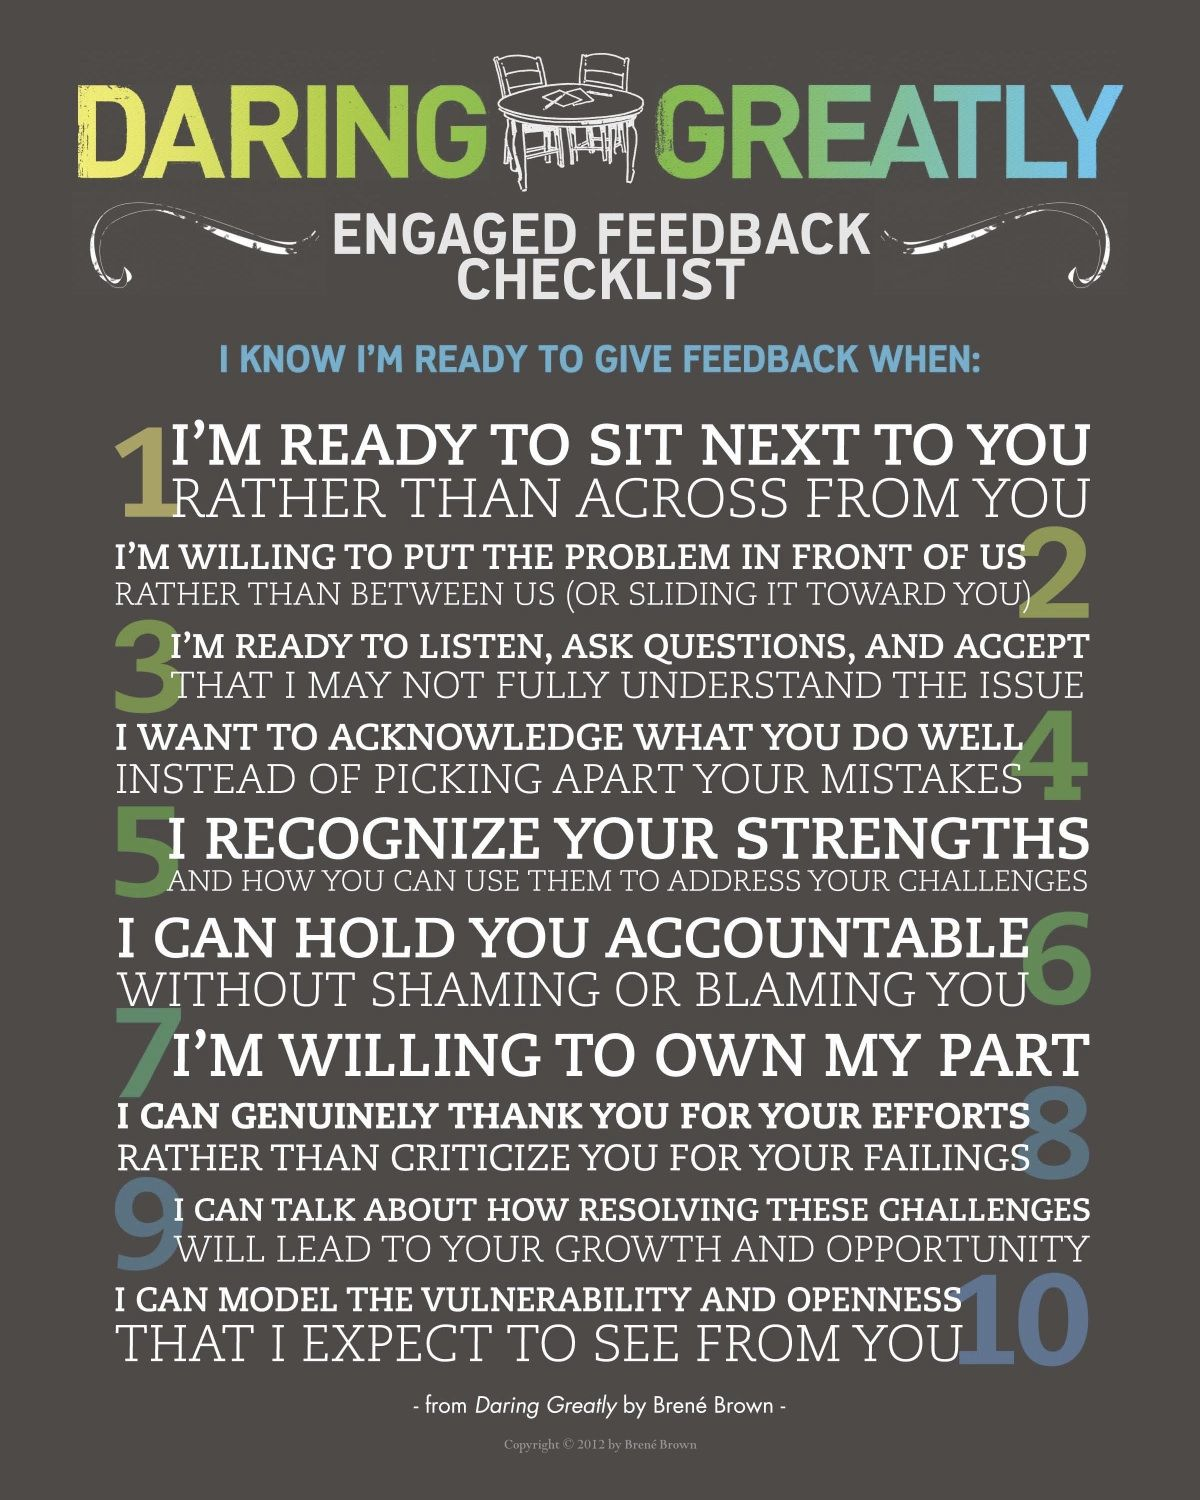 Daring Greatly Engaged Feedback Checklist